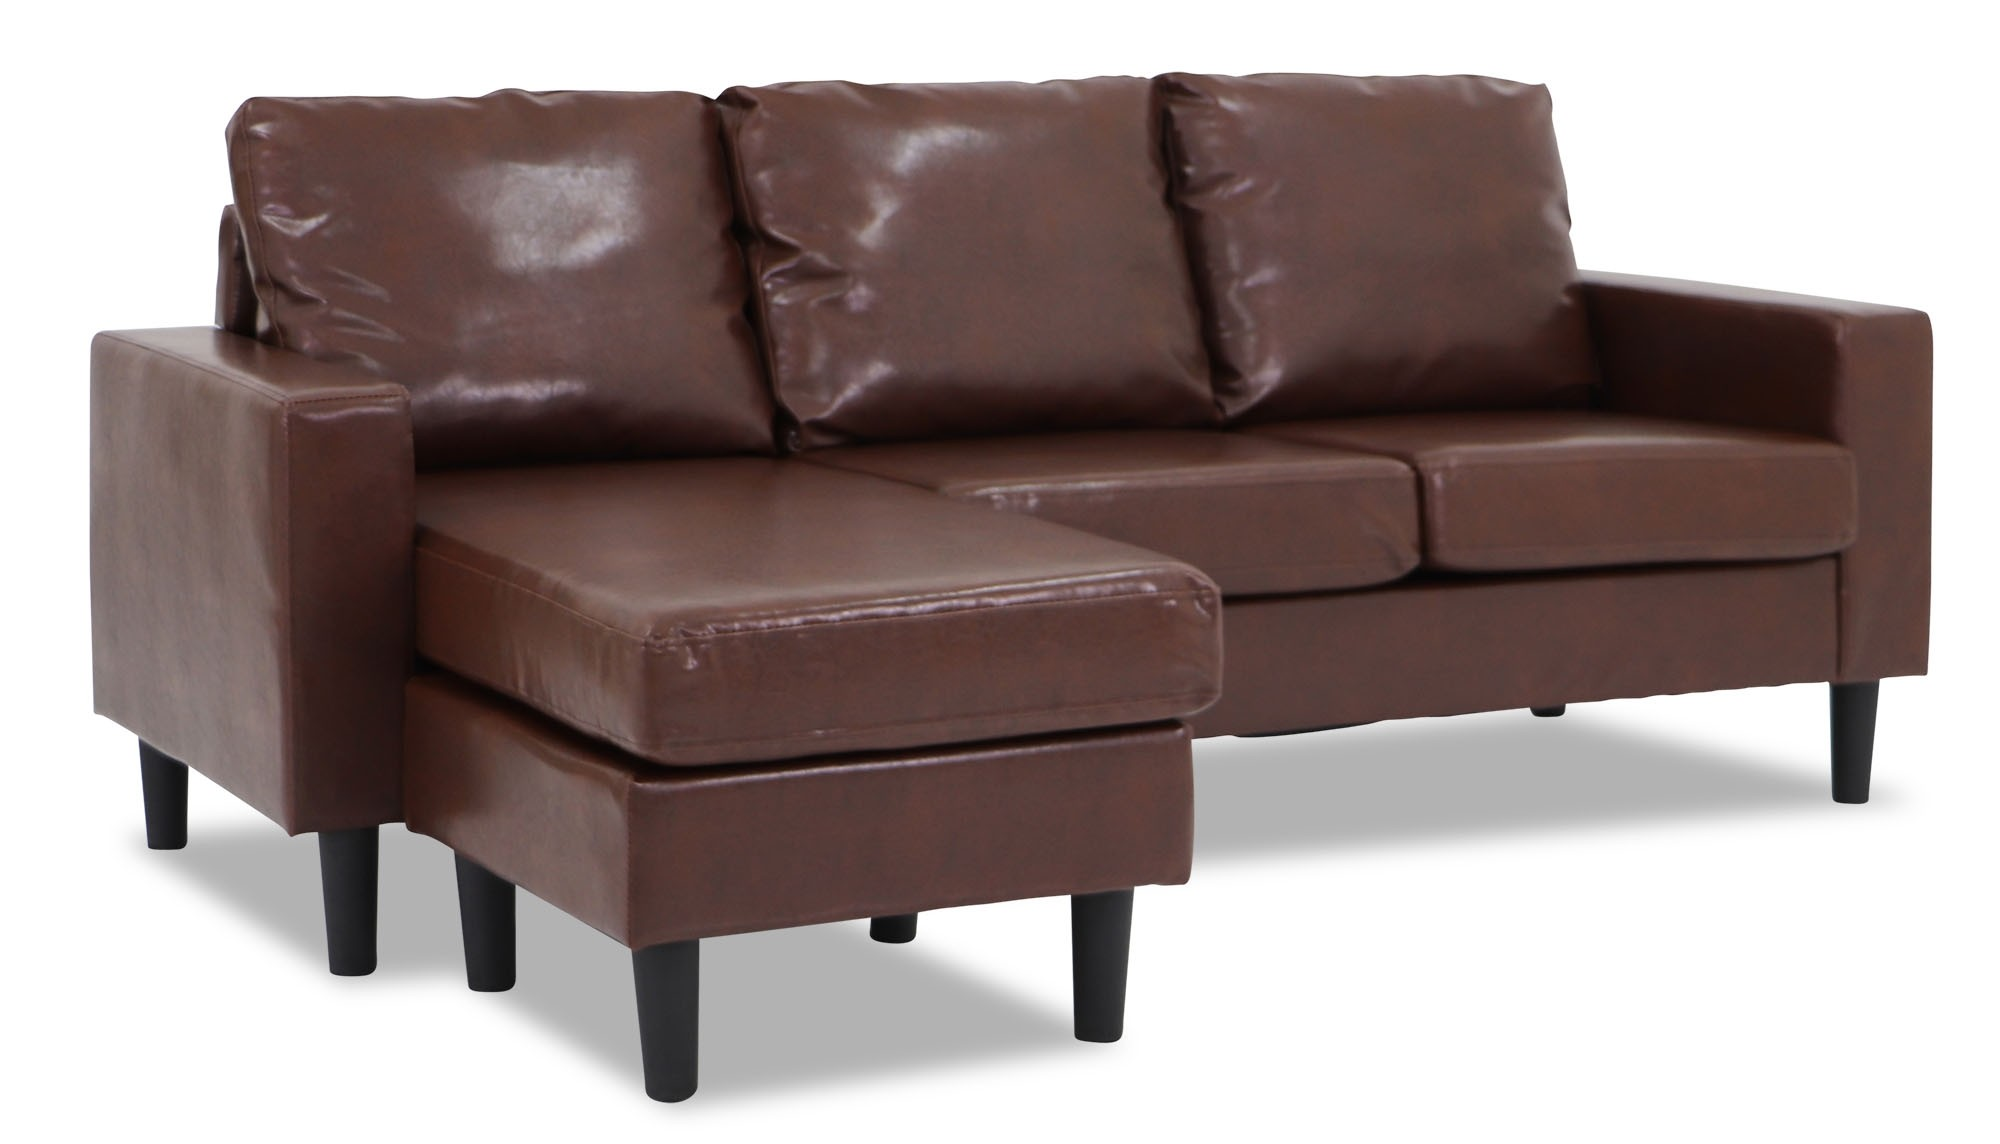 Ejiro L Shape Sofa In Pvc Brown Furniture Home D Cor Fortytwo ~ Brown Leather L Shaped Sofa